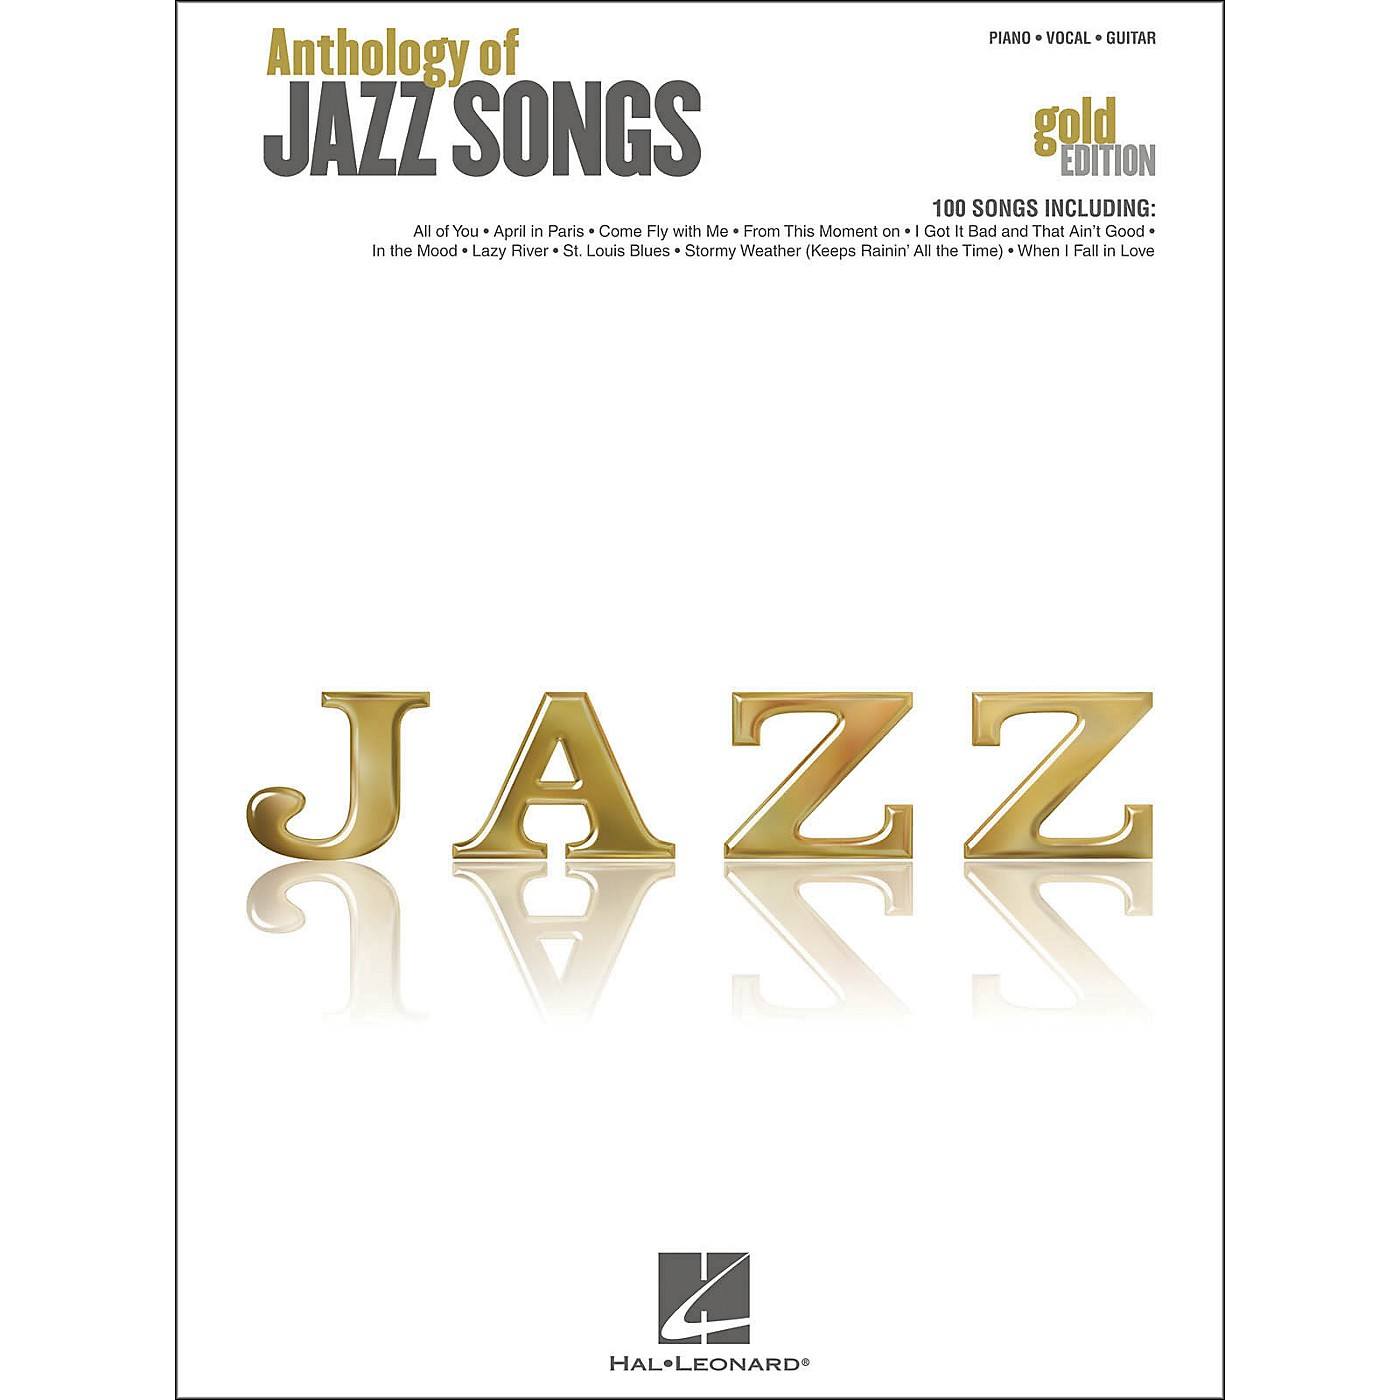 Hal Leonard Anthology Of Jazz Songs - Gold Edition arranged for piano, vocal, and guitar (P/V/G) thumbnail